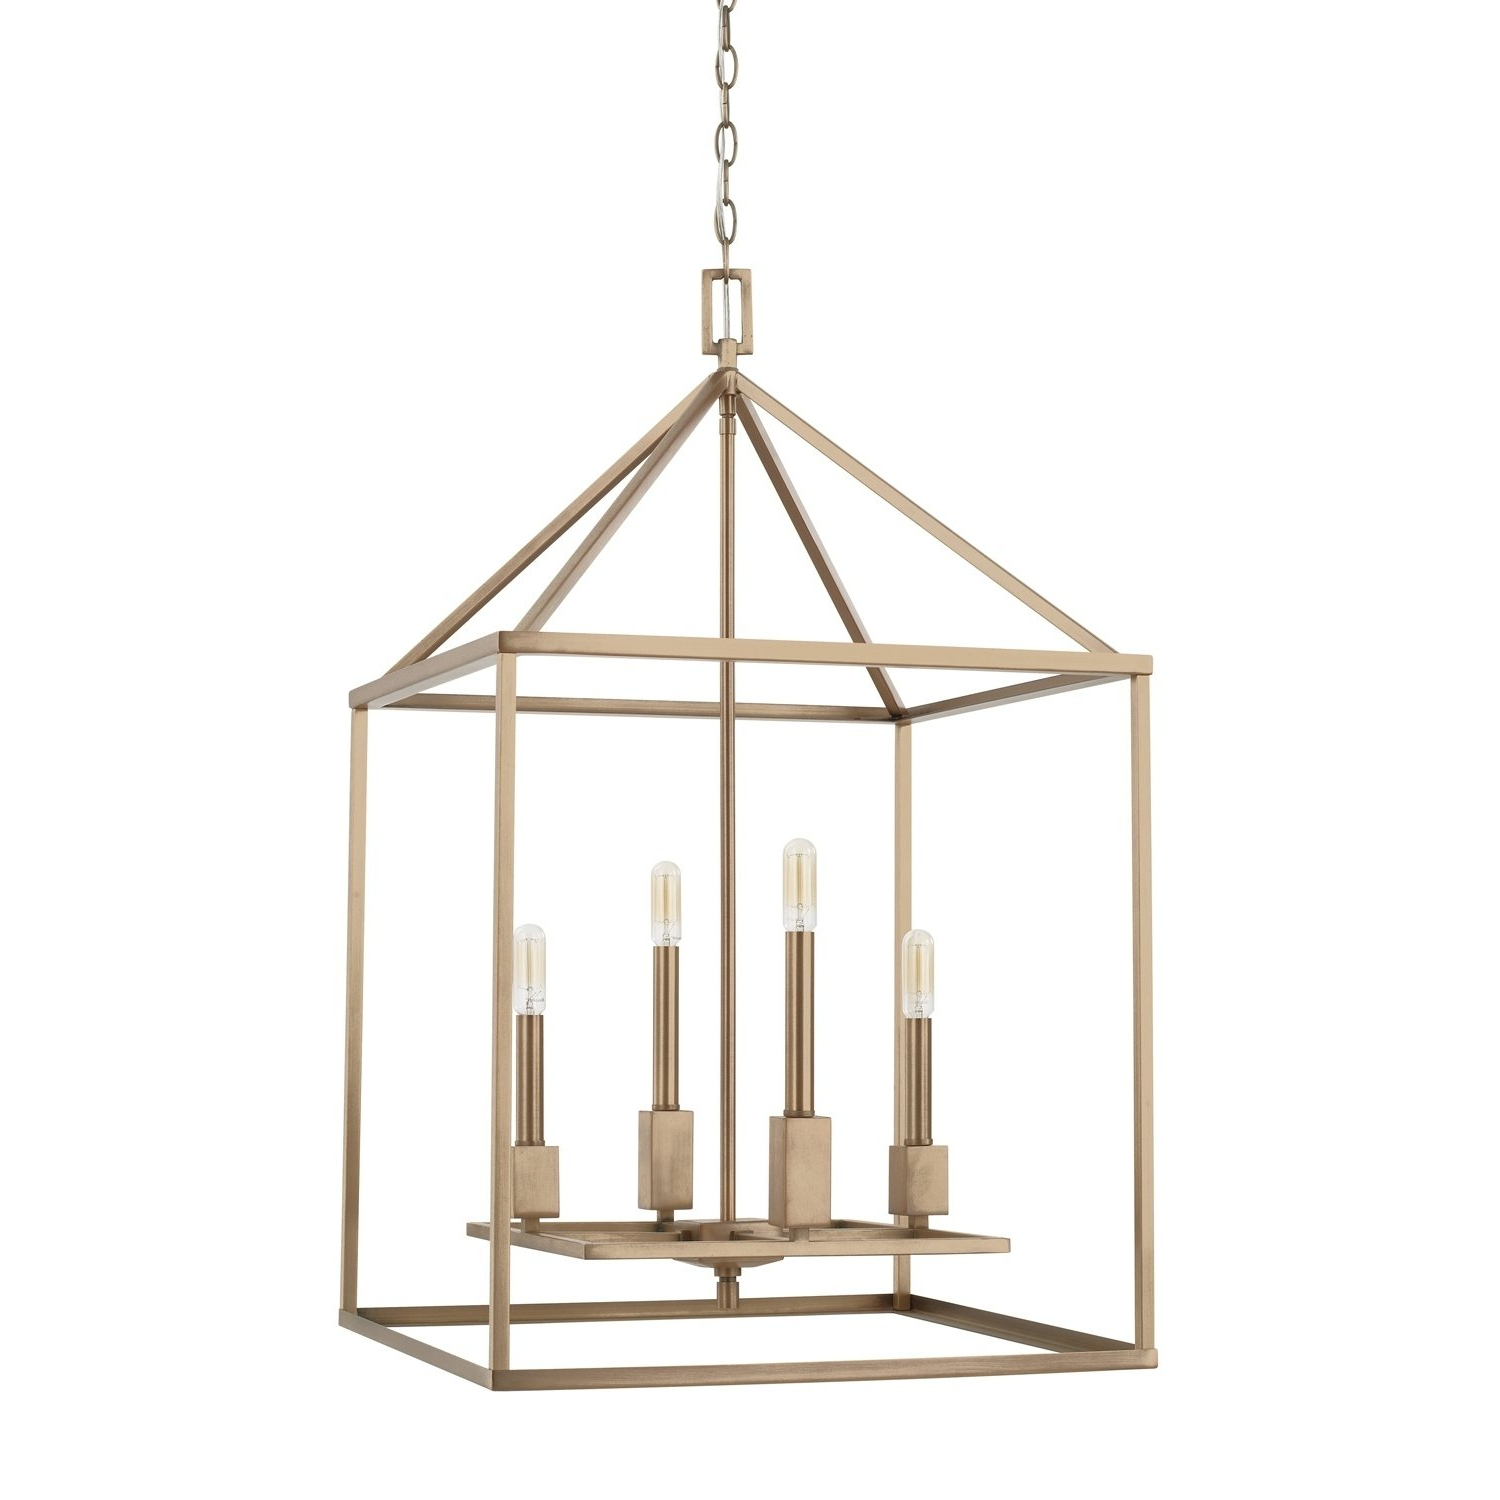 Capital Lyra Collection 4 Light Aged Brass Foyer Fixture For 2019 Freeburg 4 Light Lantern Square / Rectangle Pendants (Gallery 13 of 20)